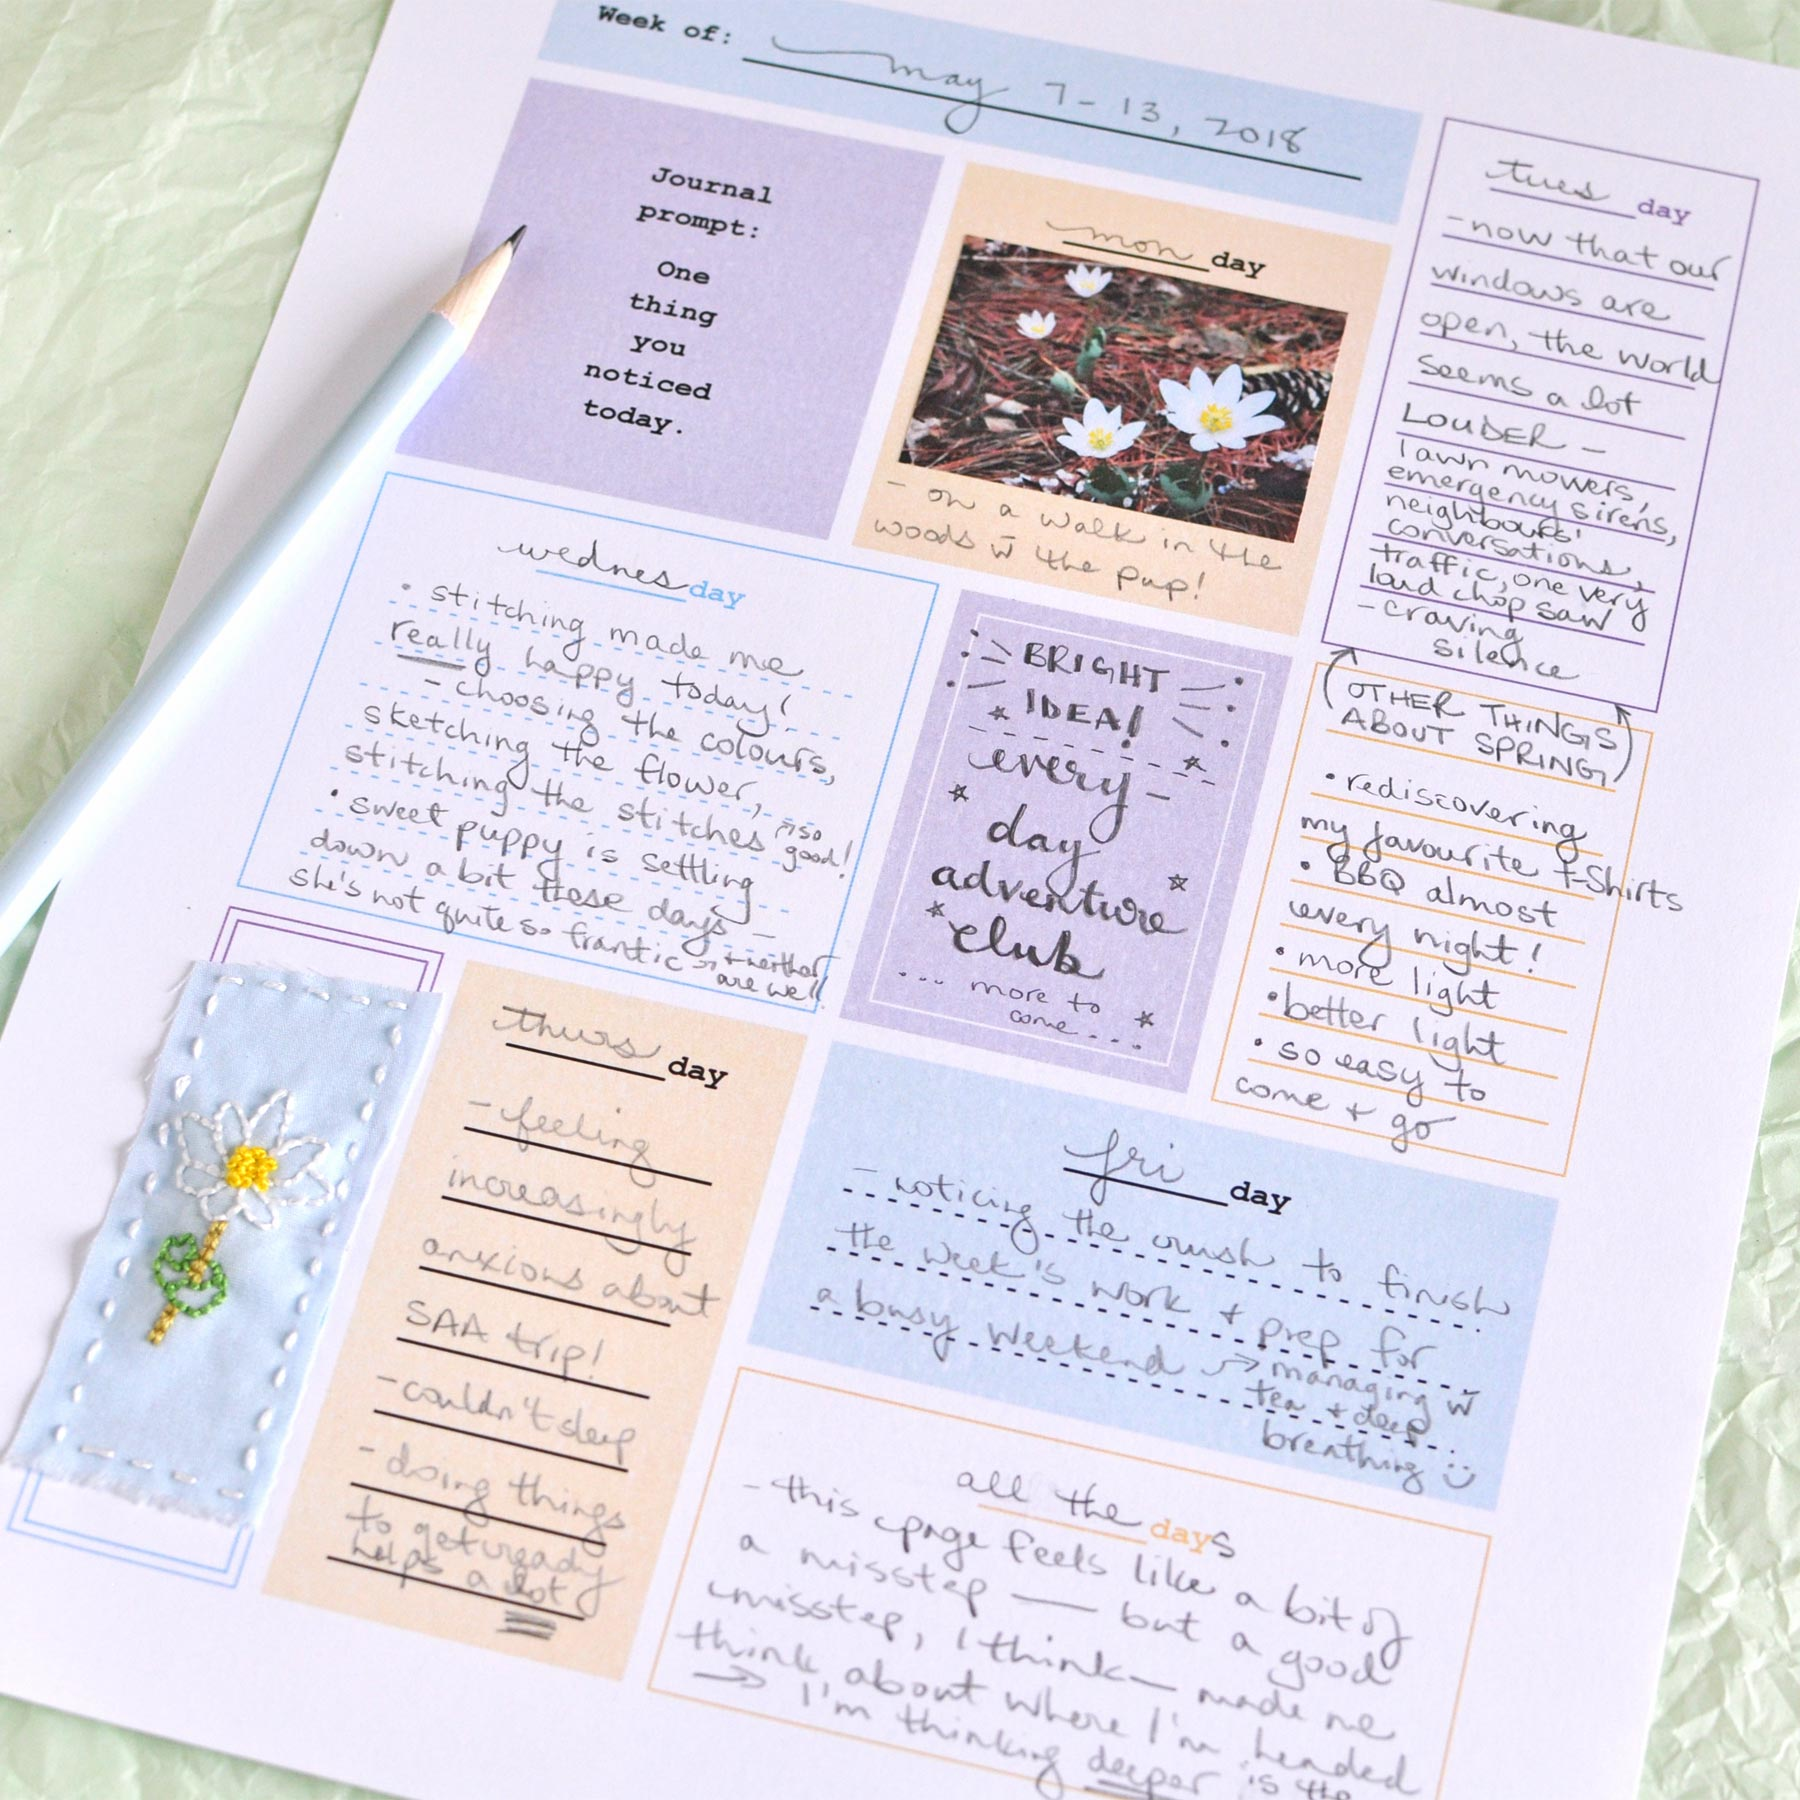 11-05-2018-Printable-journal-page-by-Christie-Zimmerb.jpg